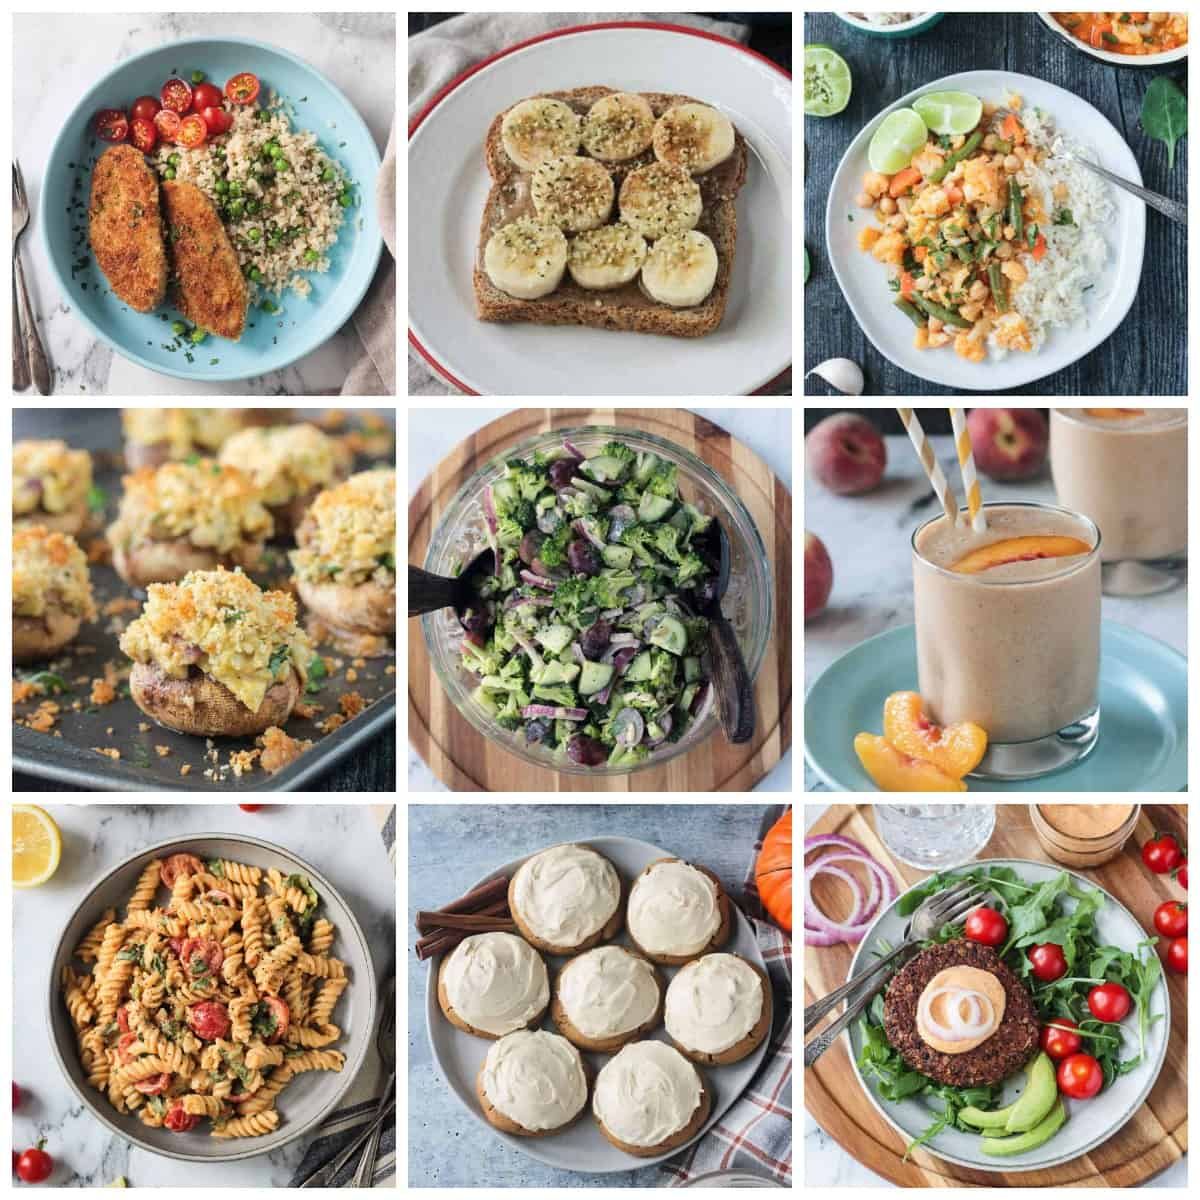 9 photo collage of popular vegan recipes.